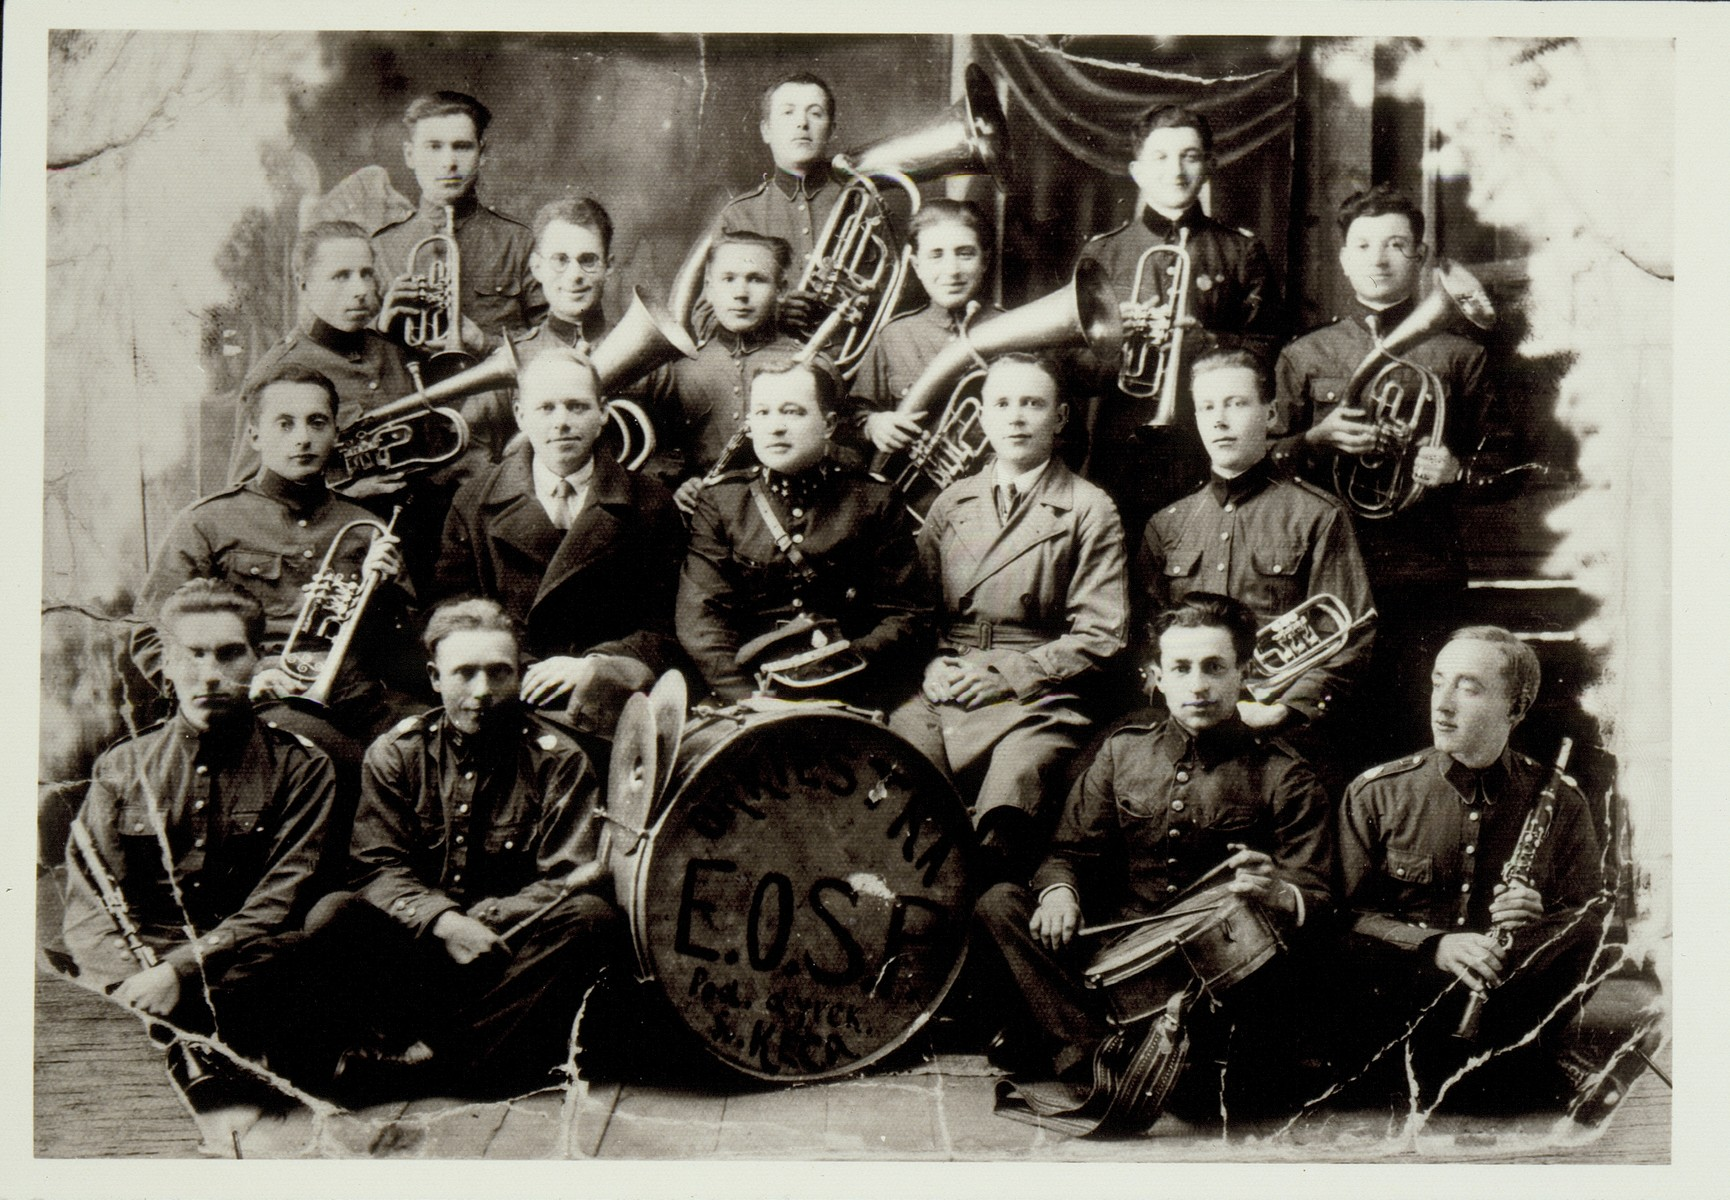 Group portrait of members of the Eisiskes fire department orchestra, which included both Poles and Jews.    Among the Jews pictured are: Bere-Leibke Garmenishki, Shepske Sonenson and Motl Narodowicz (top row, right to left); Menahem Politacki (third row from the front, second from the left, wearing glasses), and Eishke Levin (second row from the front, far left). The Polish conductor Gotowicky, is seated behind the drum.  Menahem Politacki immigrated to Palestine before the war; Motl Narodowicz survived the war as a partisan.